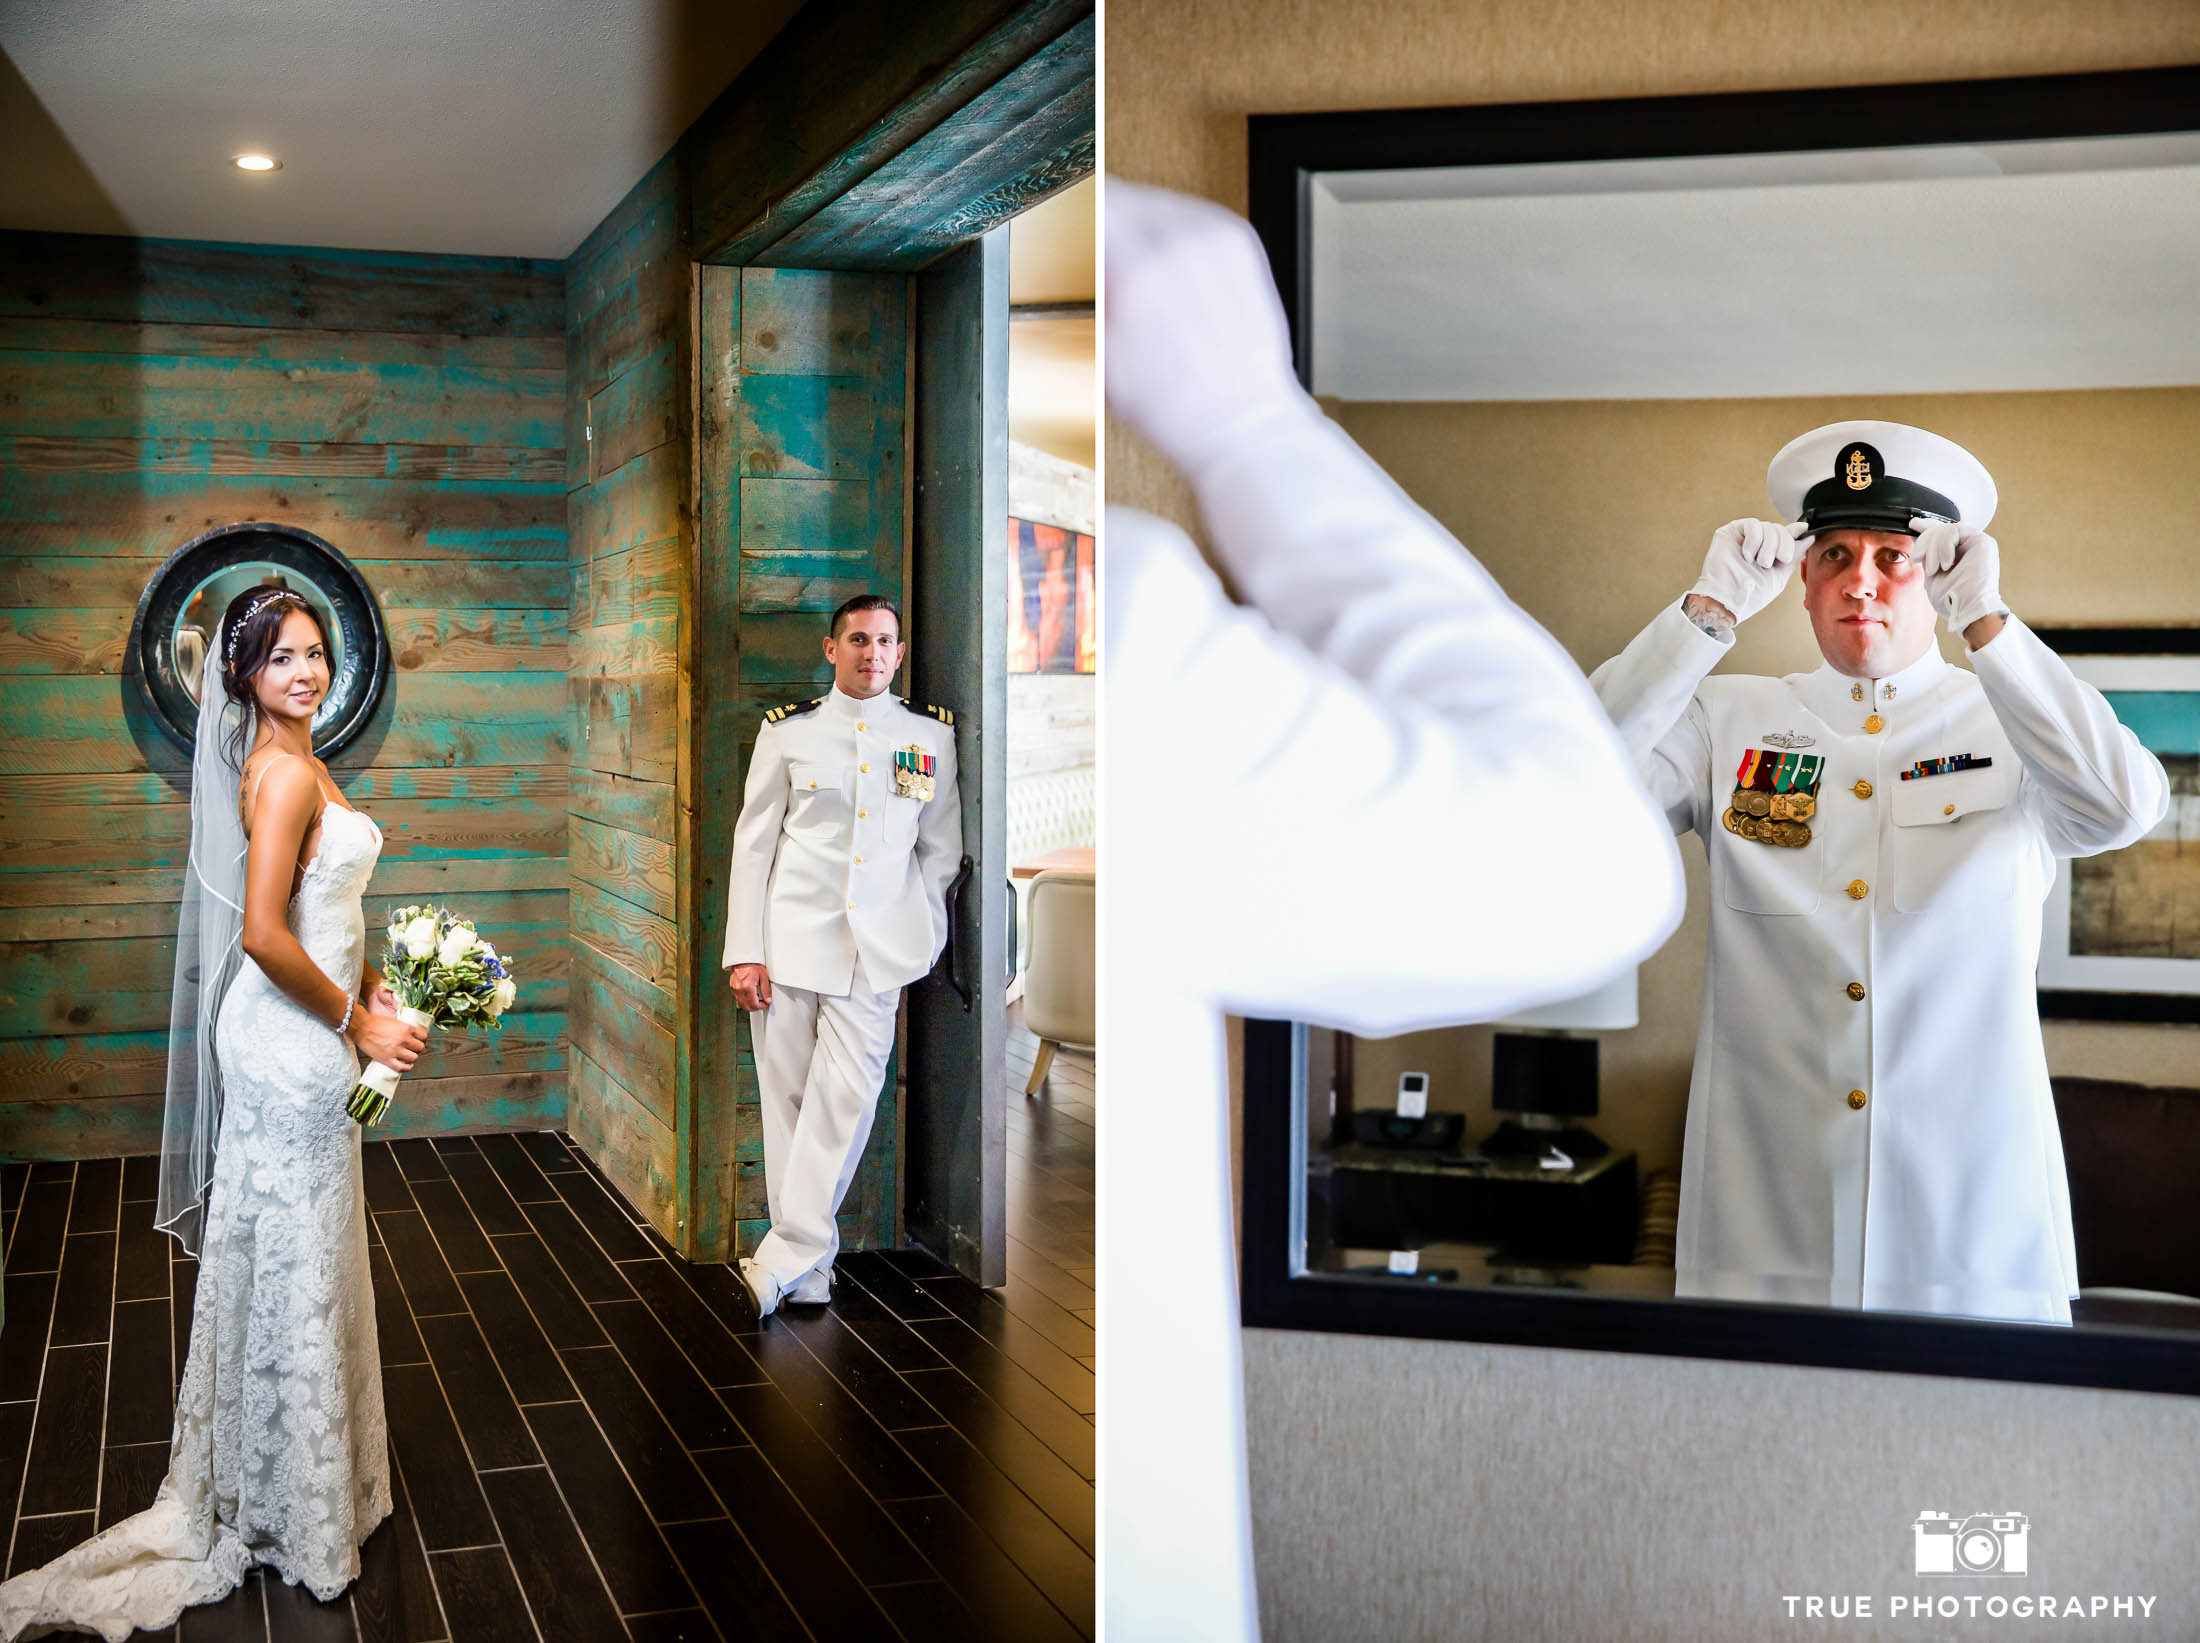 Military Wedding Couples get ready for the Wedding Day and pose for portraits in Hotel